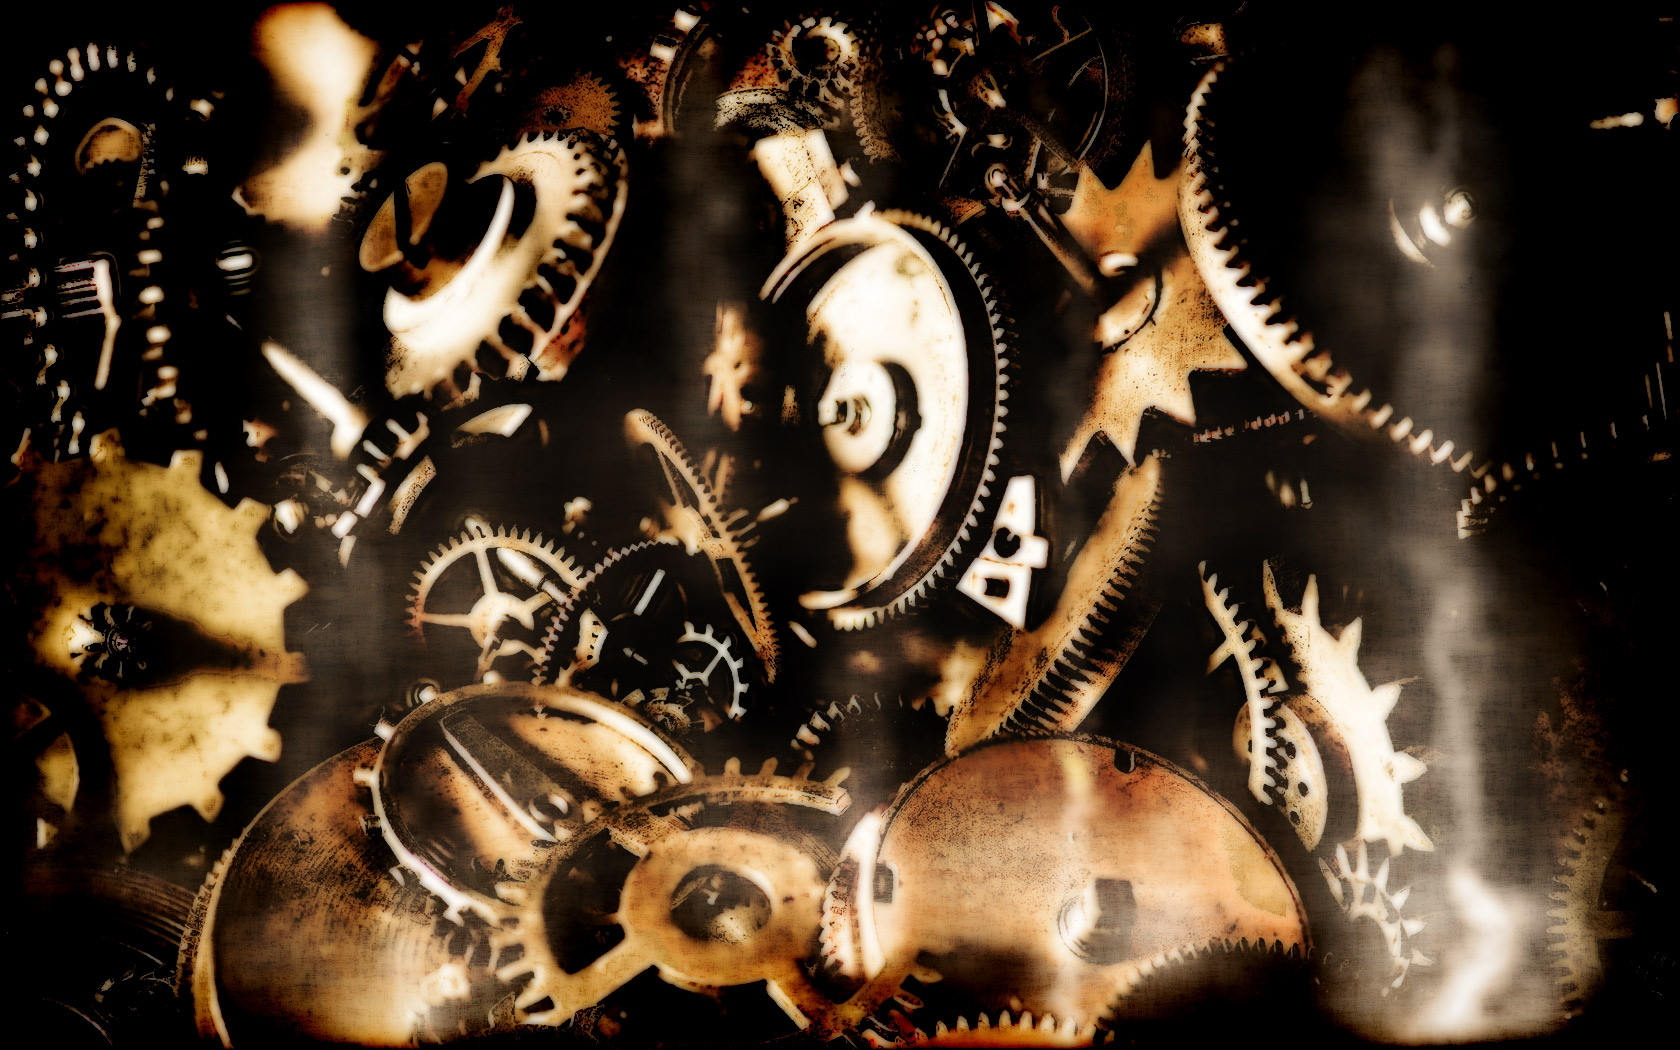 steampunk cogs abstract fantasy - photo #38